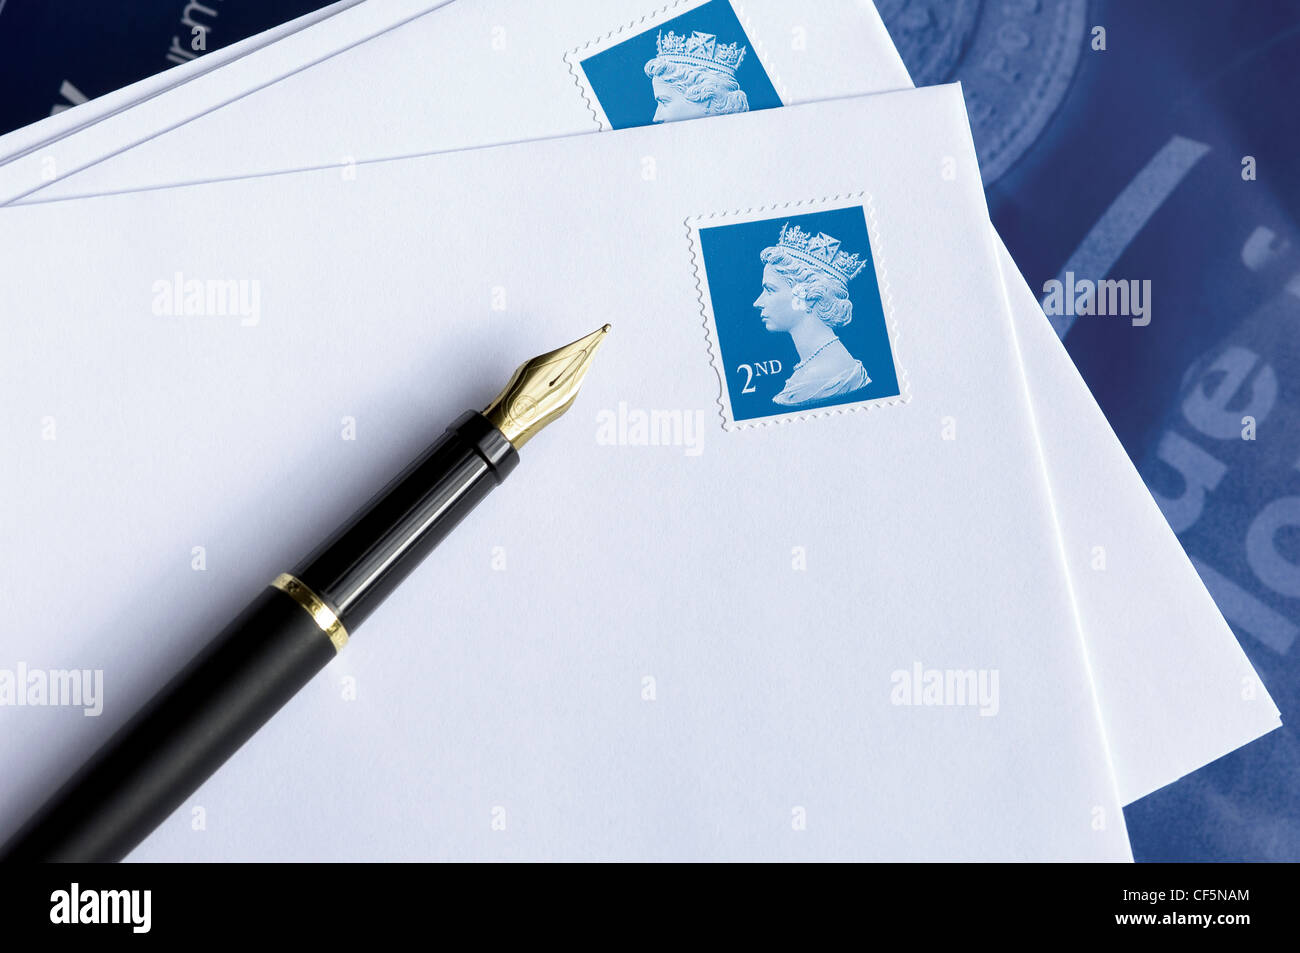 A still life featuring a fountain pen resting on white envelopes bearing second class British stamps. - Stock Image